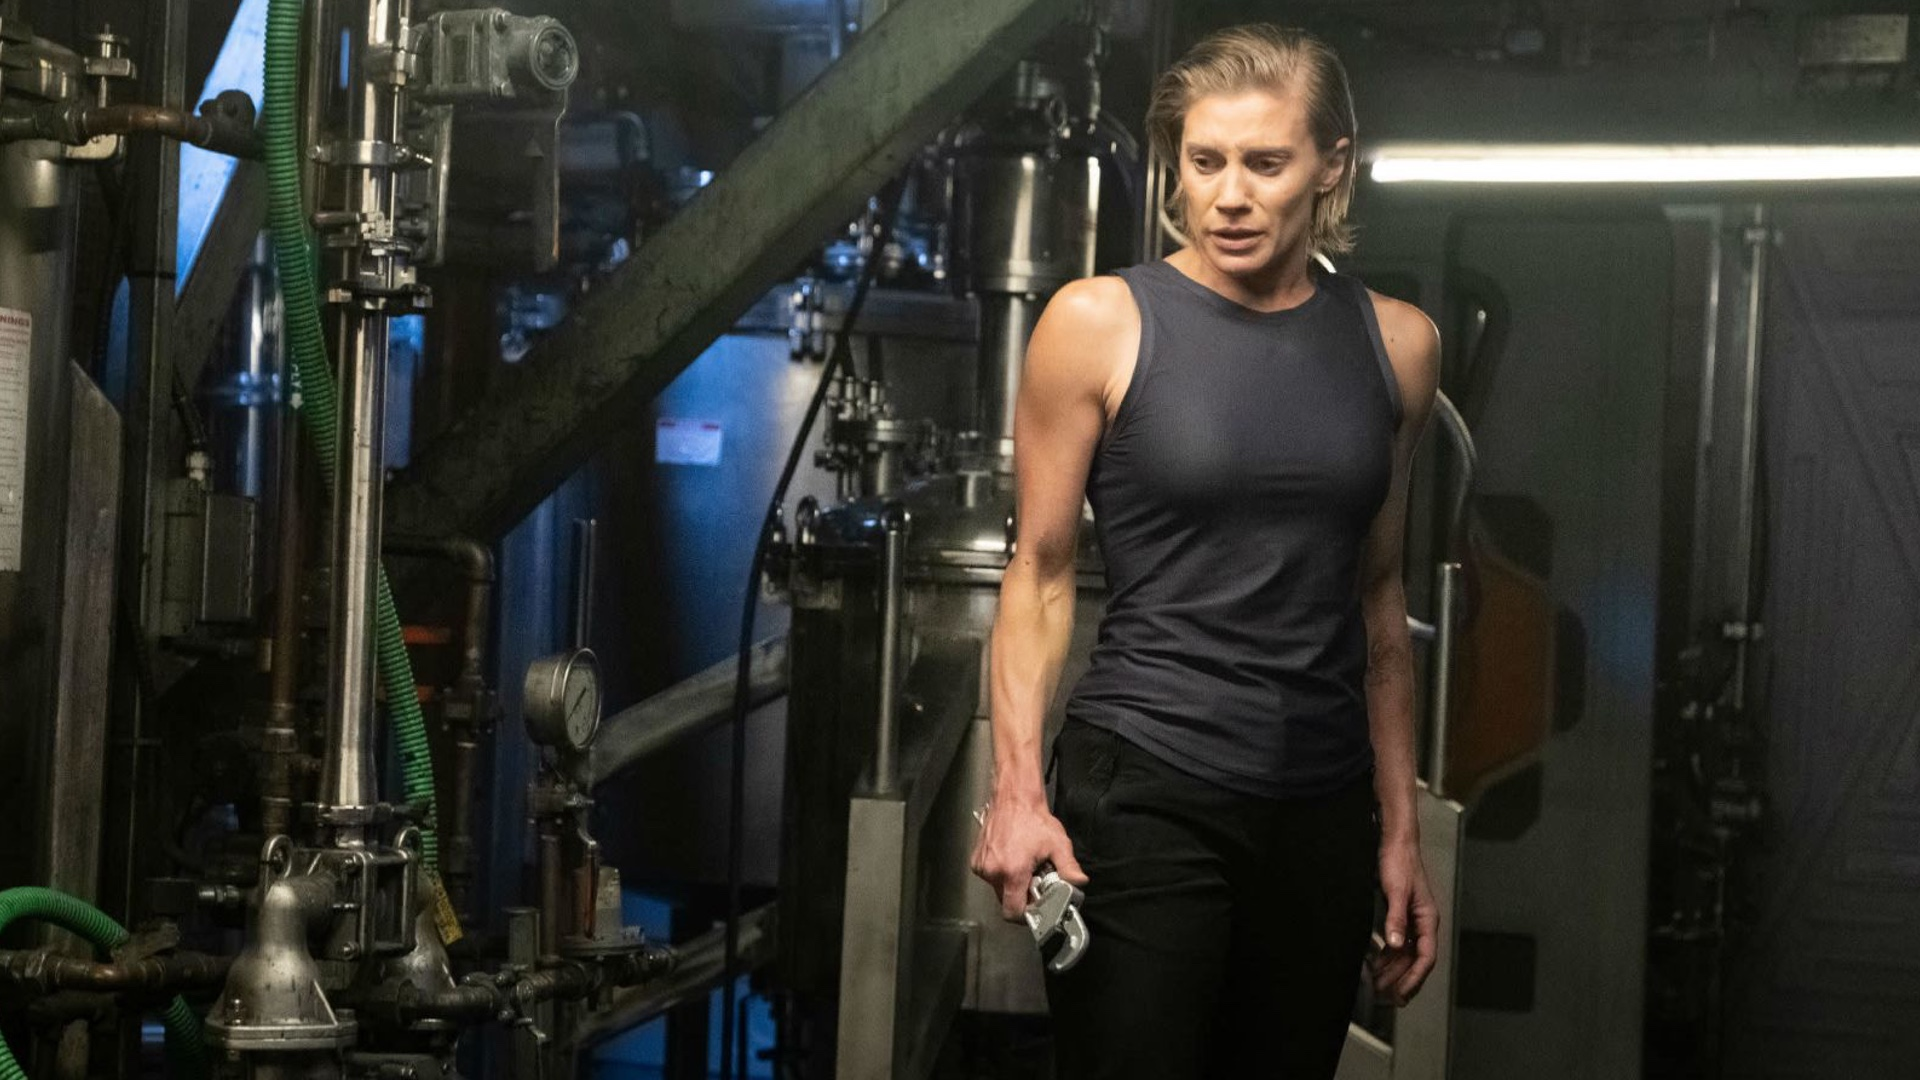 katee-sackhoff-embarks-on-a-mission-to-save-humanity-in-trailer-for-netflixs-sci-fi-film-another-life-social.jpg